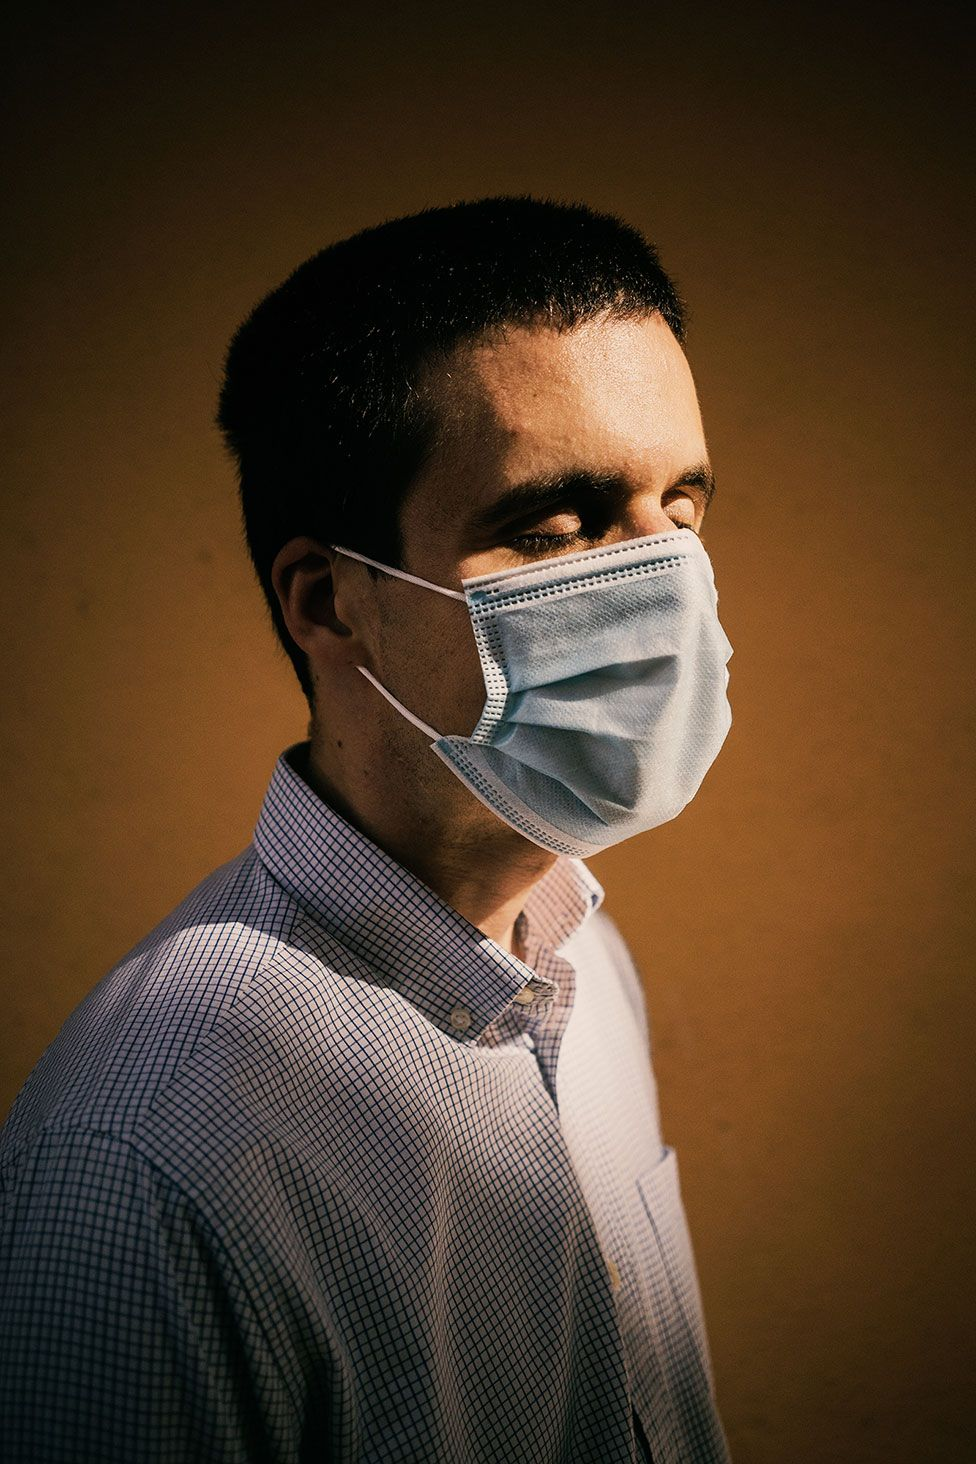 A portrait of a blind man wearing a face mask